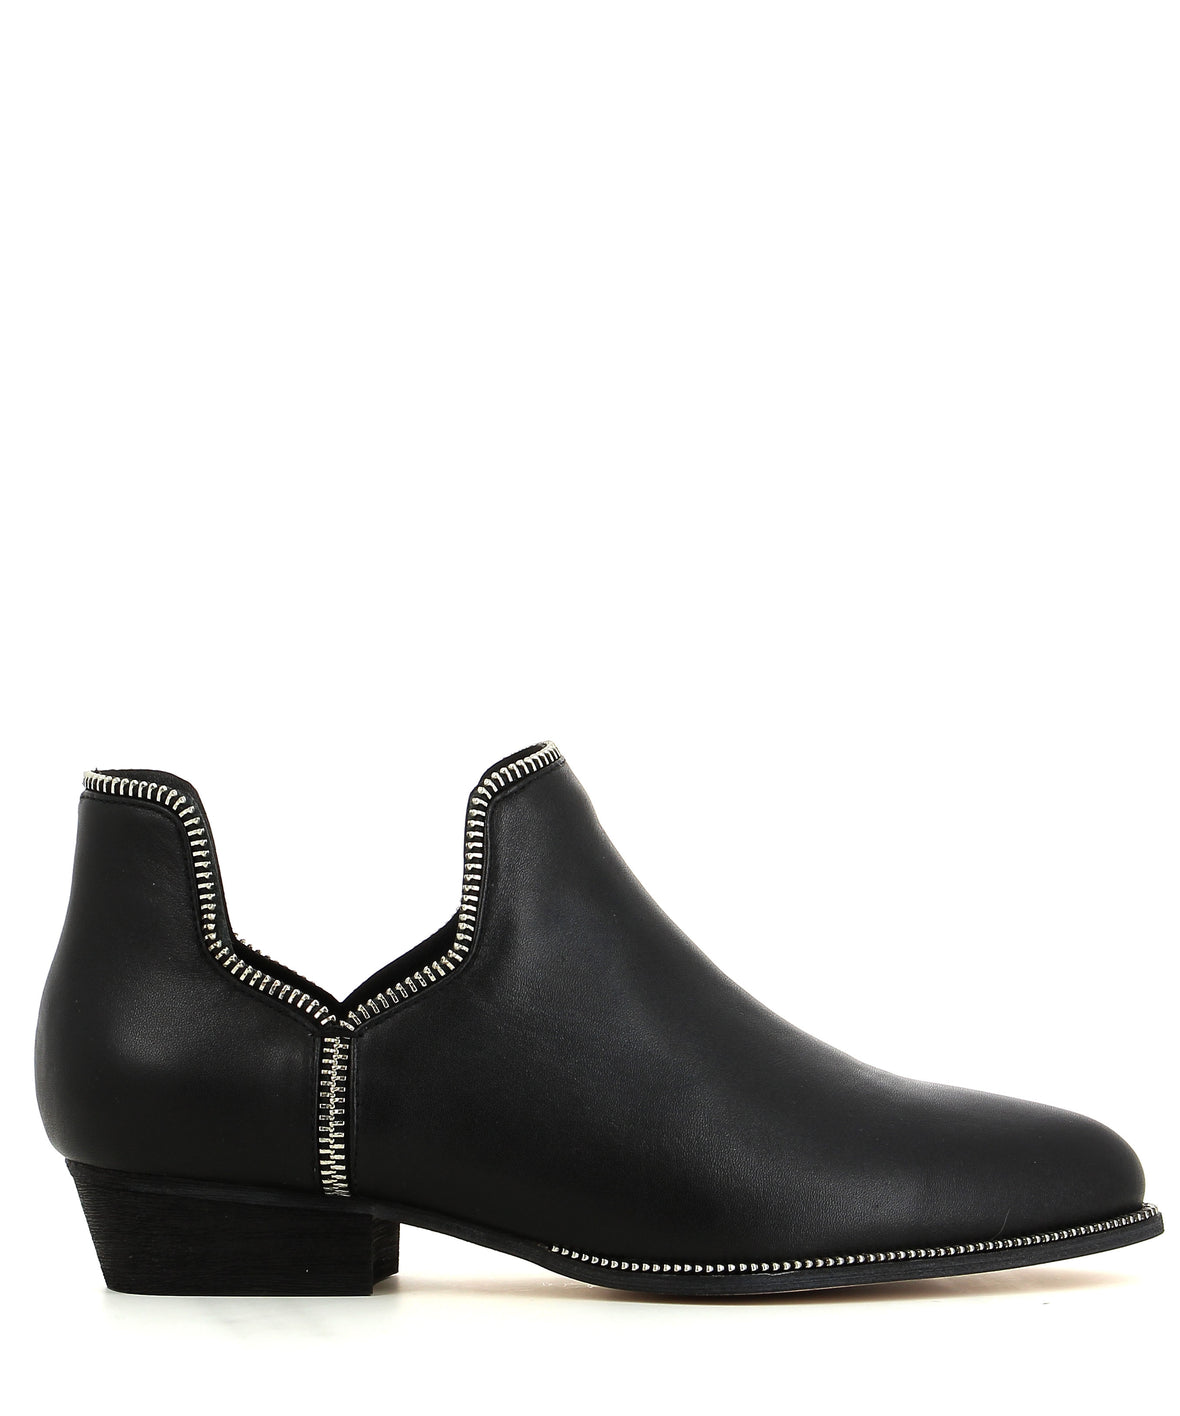 Black Leather Ankle Boots - Senso